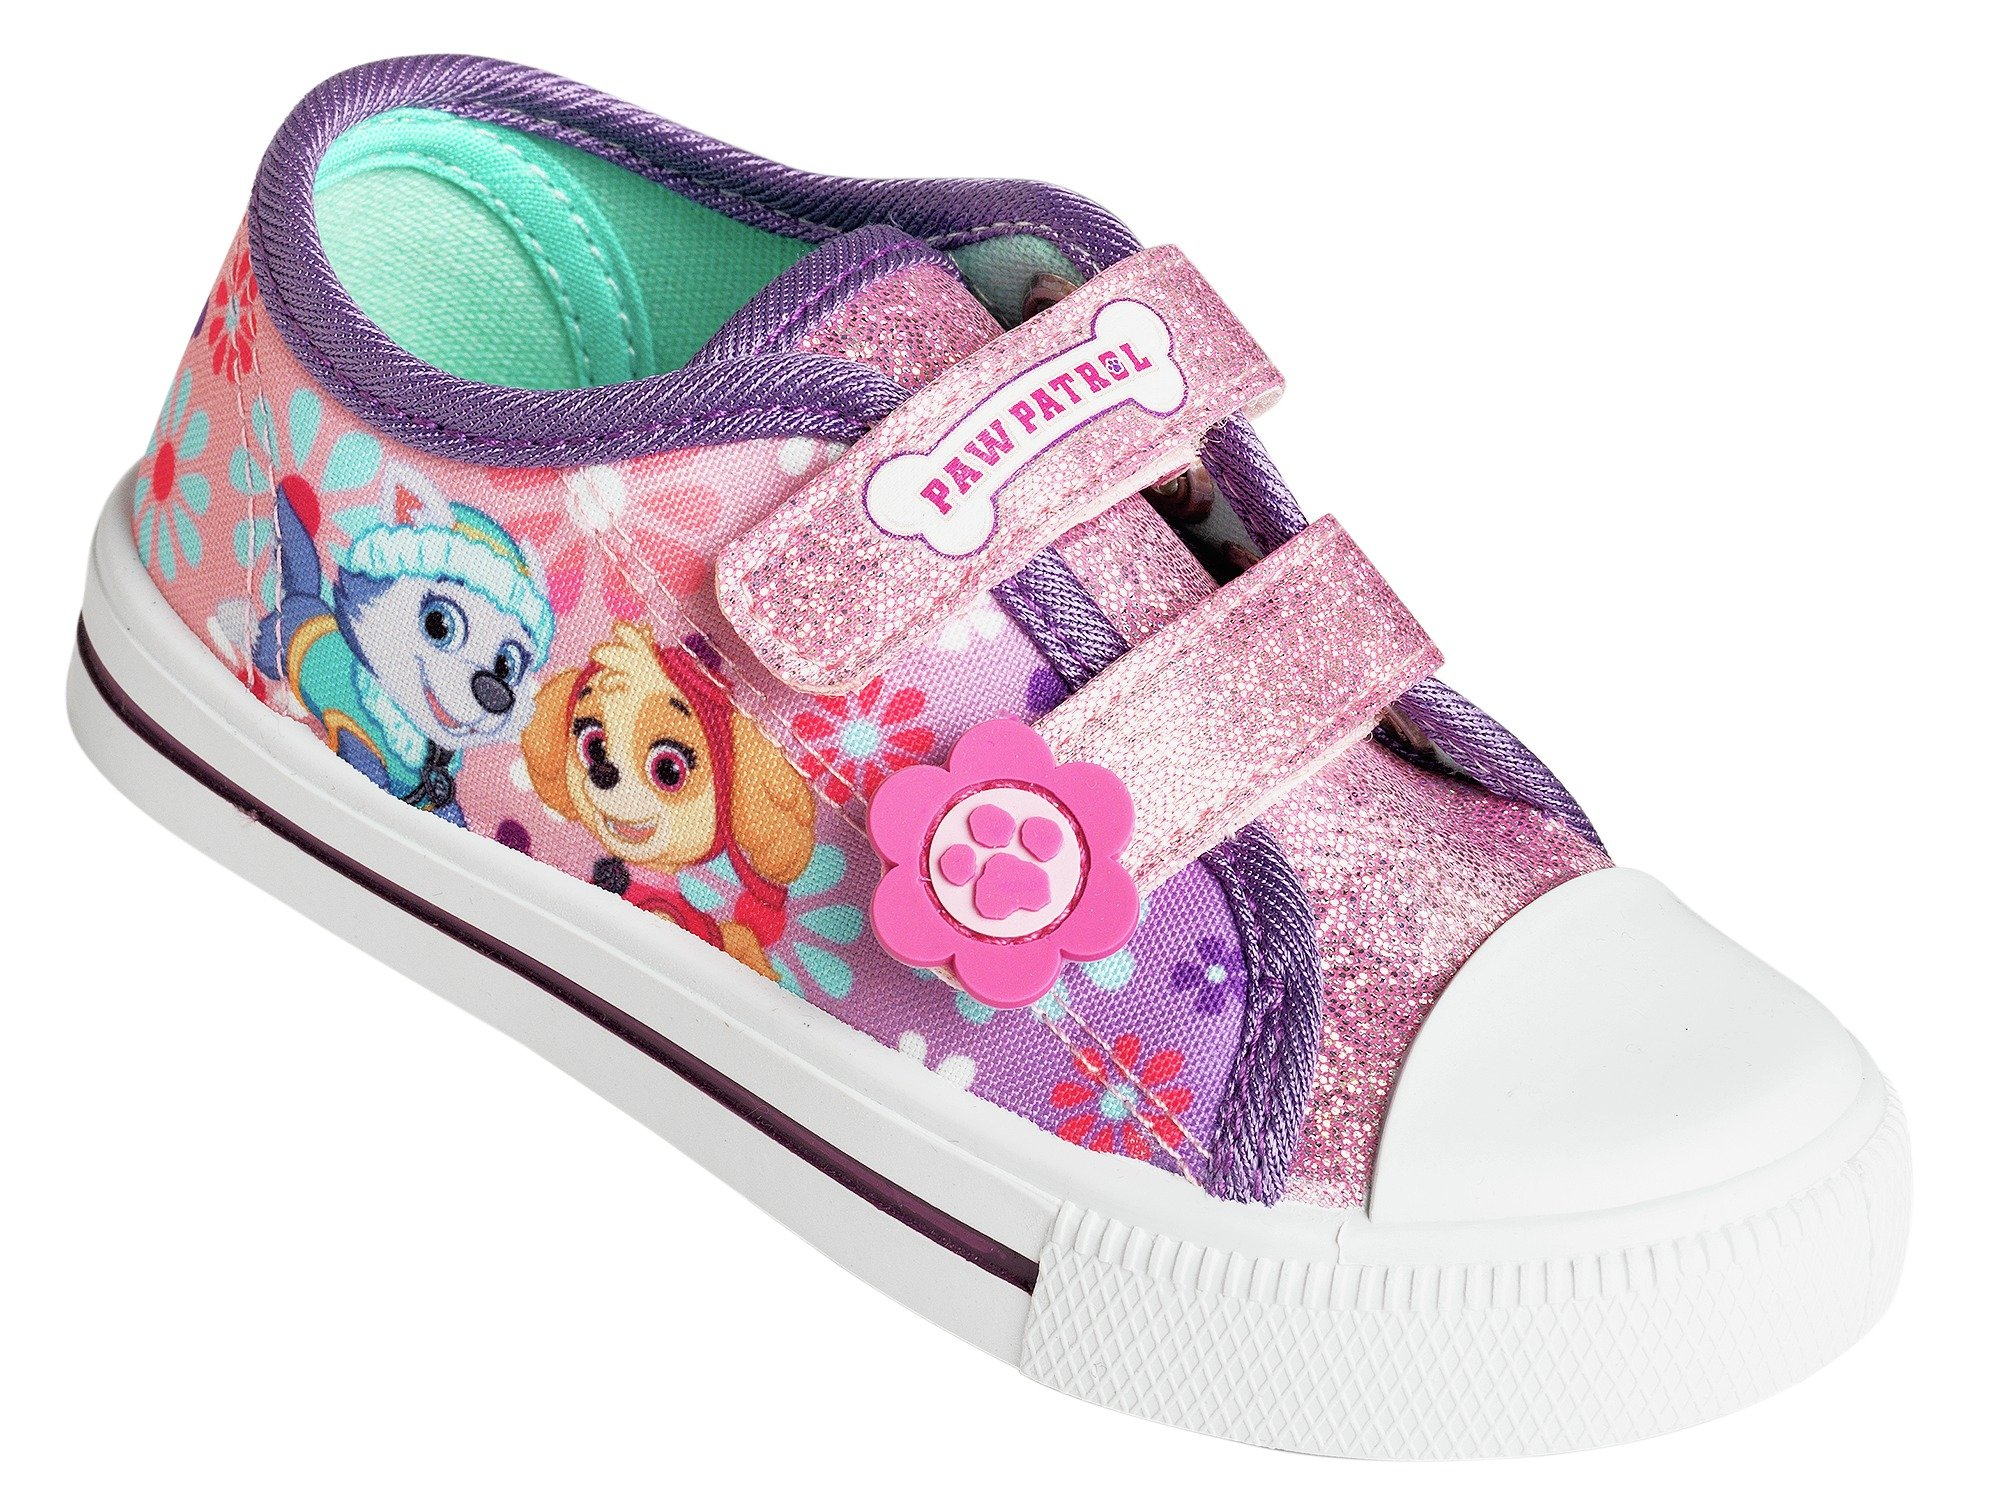 Image of PAW Patrol Pink Canvas Trainers - Size 8